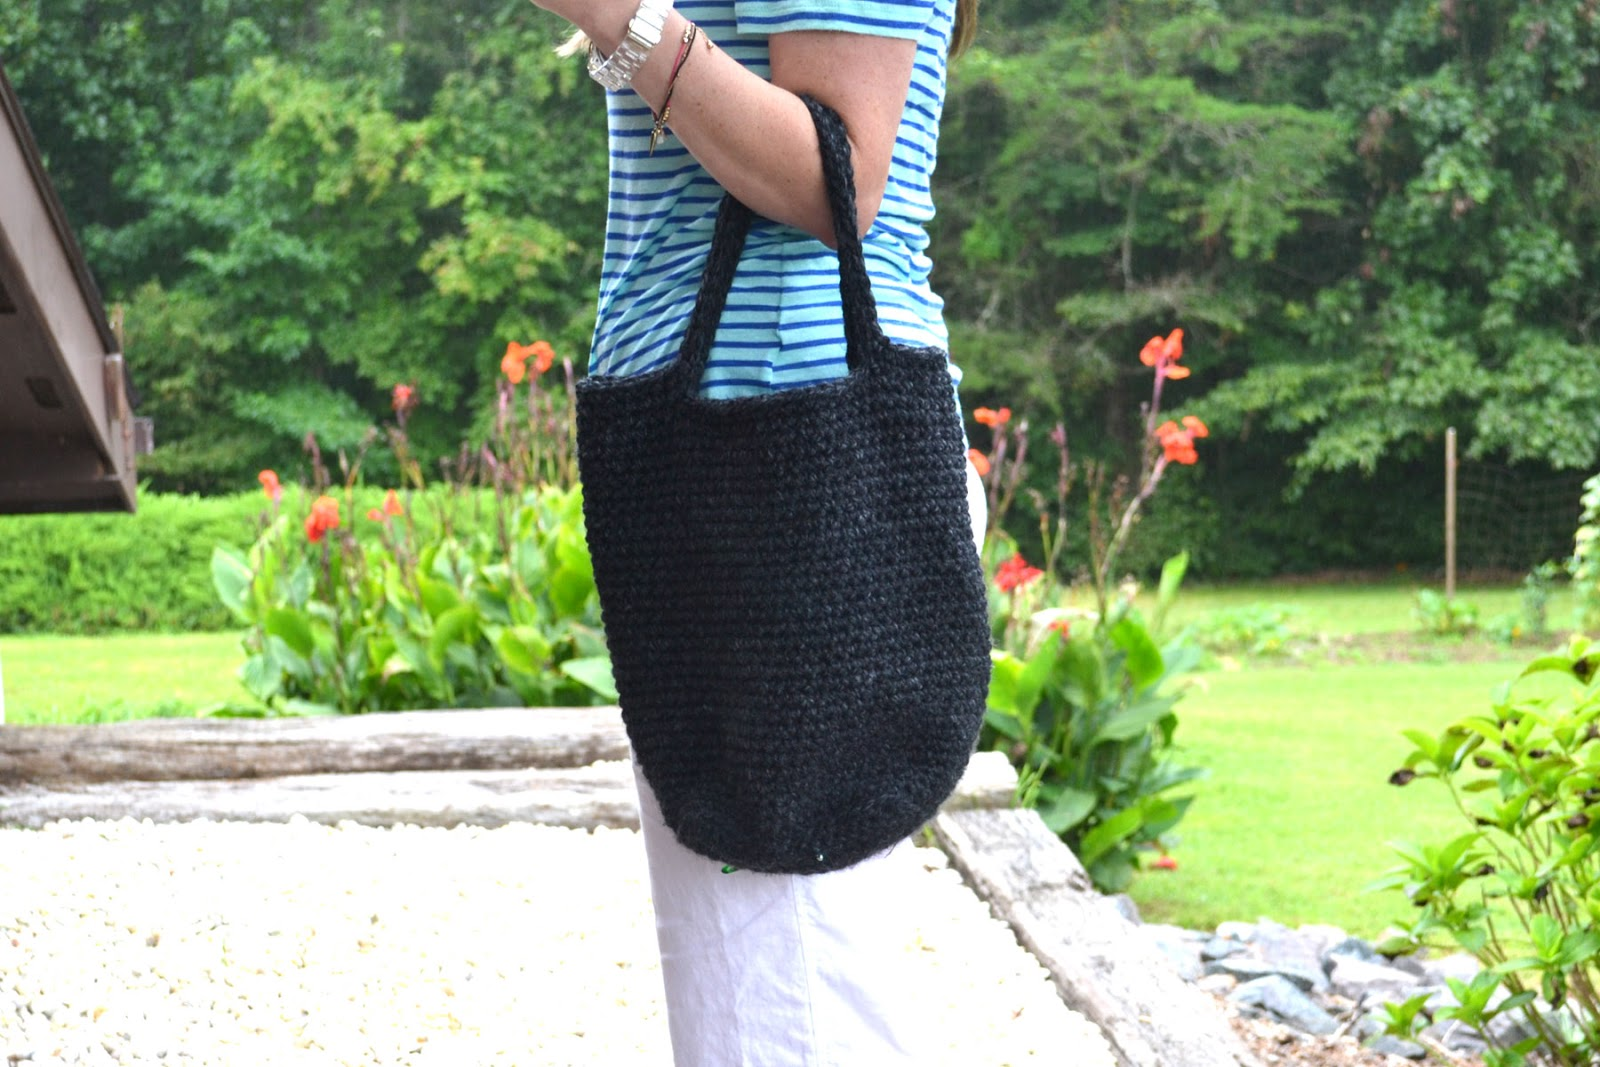 Chunky Crochet Tote Pattern : Crochet in Color: Chunky Crocheted Tote Pattern